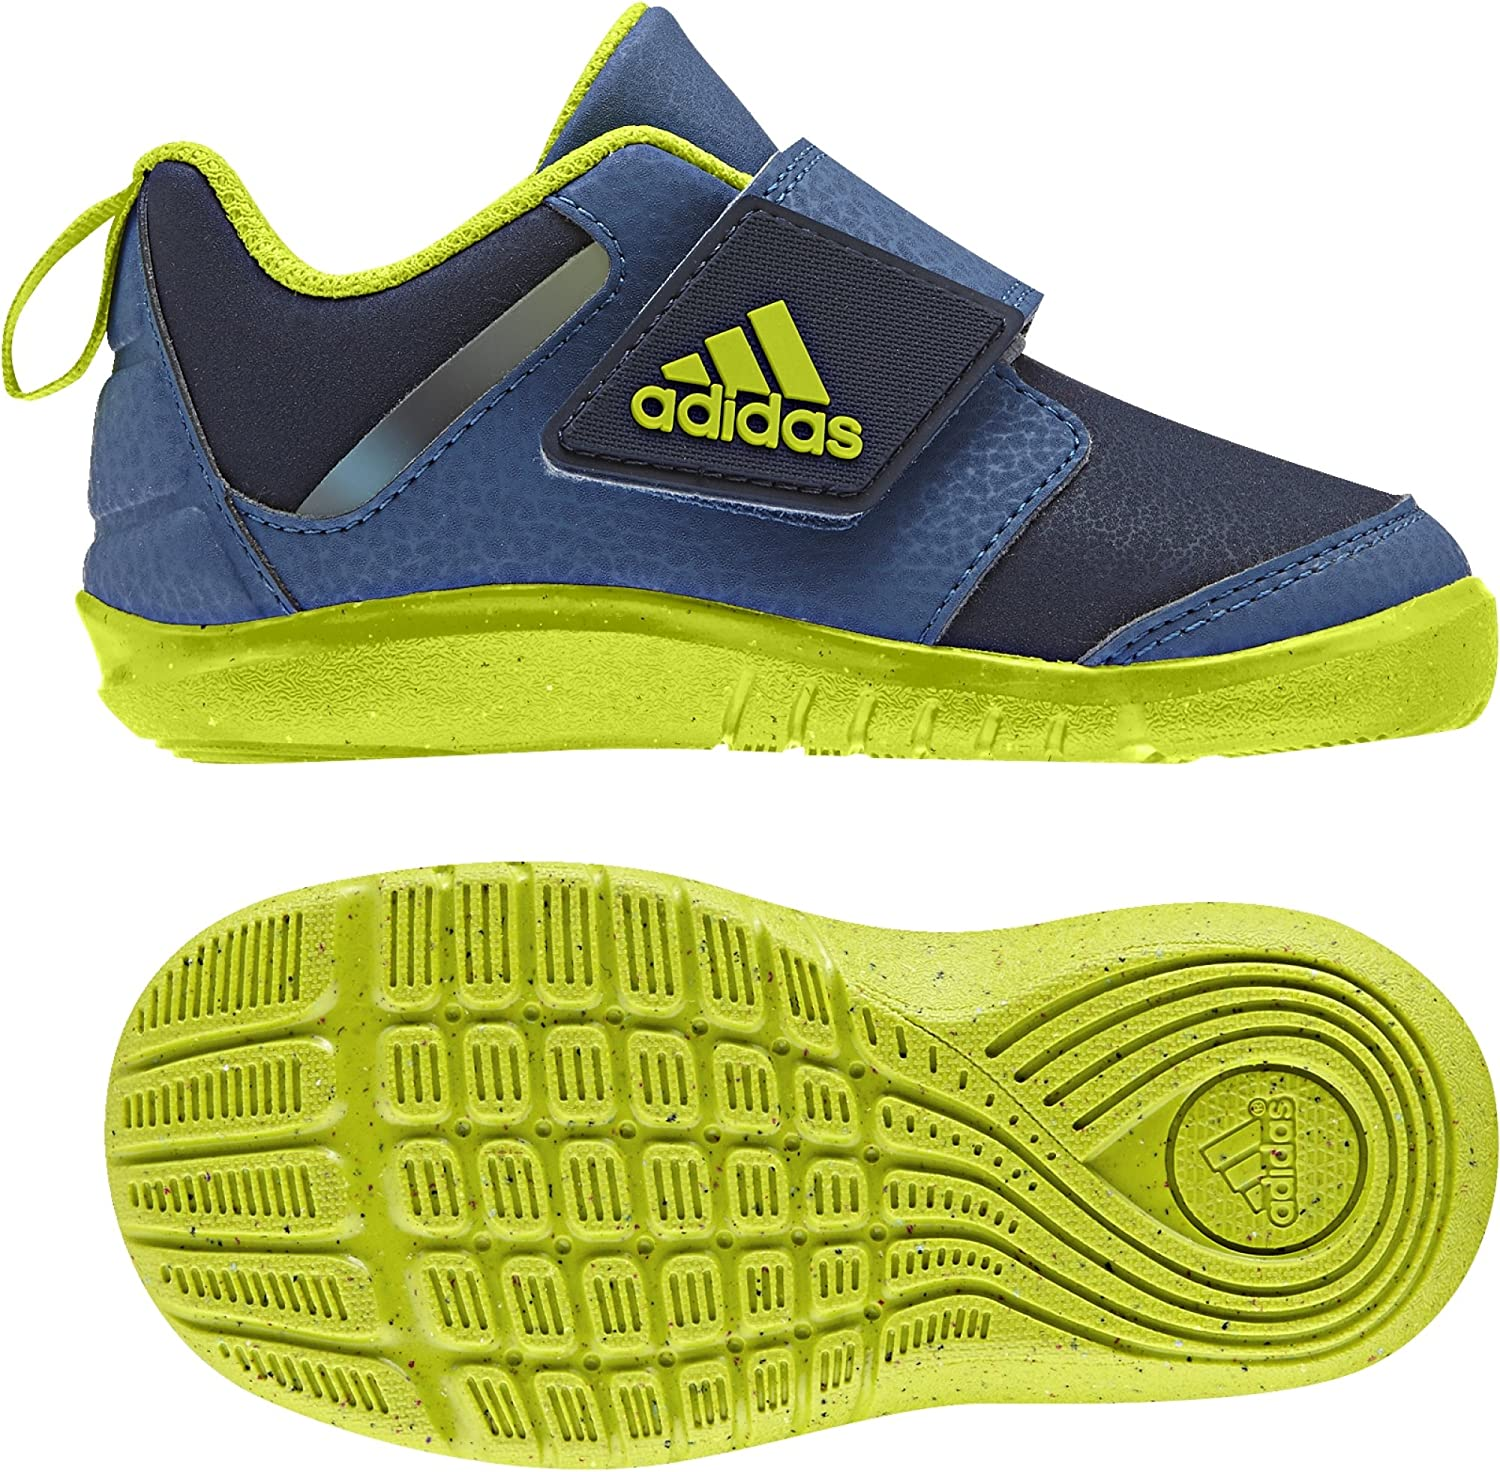 abrazo honor consumidor  adidas Unisex_Baby Fortaplay Ac I Open Back Slippers, Blue Azubas Seamso  Maruni, 6.5UK Child: Amazon.co.uk: Shoes & Bags